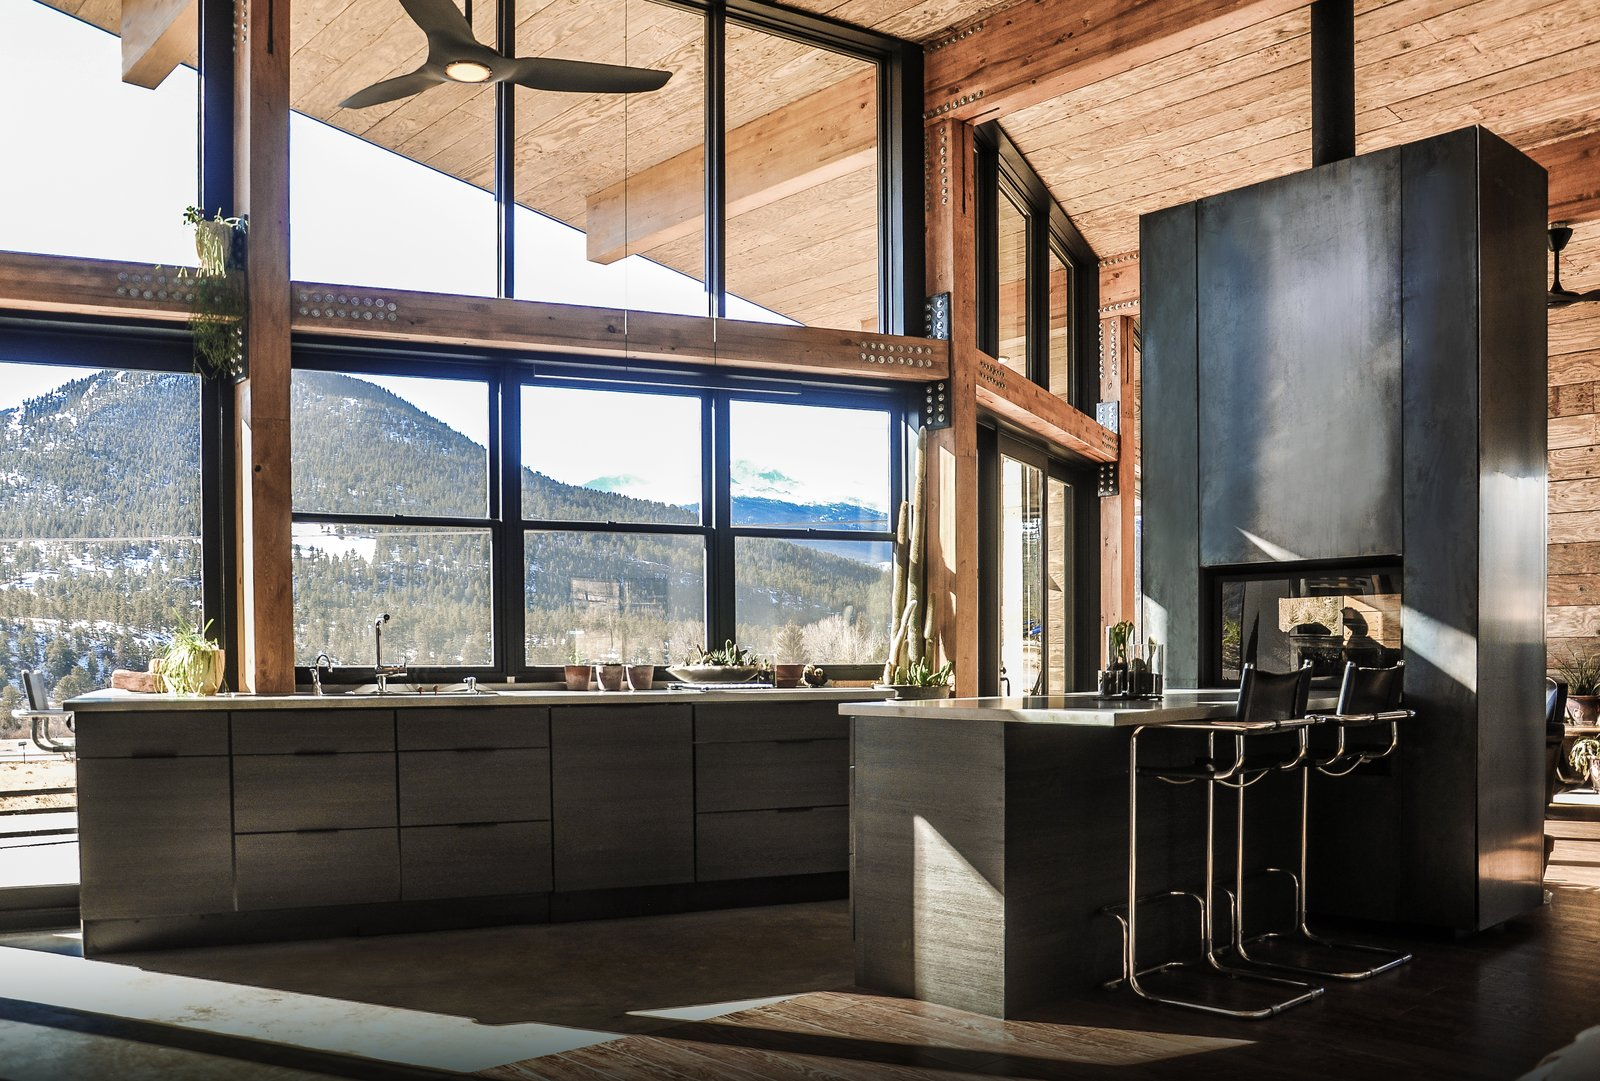 Kitchen, Refrigerator, Microwave, Cooktops, Wood, Dishwasher, Ceiling, Metal, Dark Hardwood, Concrete, Concrete, Range, Wall Oven, Pendant, Concrete, Accent, and Drop In The warm industrial kitchen celebrates views of Rocky Mountain National Park beyond. A see-through, steel fireplace becomes a glowing beacon that warms the kitchen and living room at the heart of the home.   Best Kitchen Pendant Microwave Refrigerator Wall Oven Drop In Wood Dark Hardwood Photos from Estes Park Residence